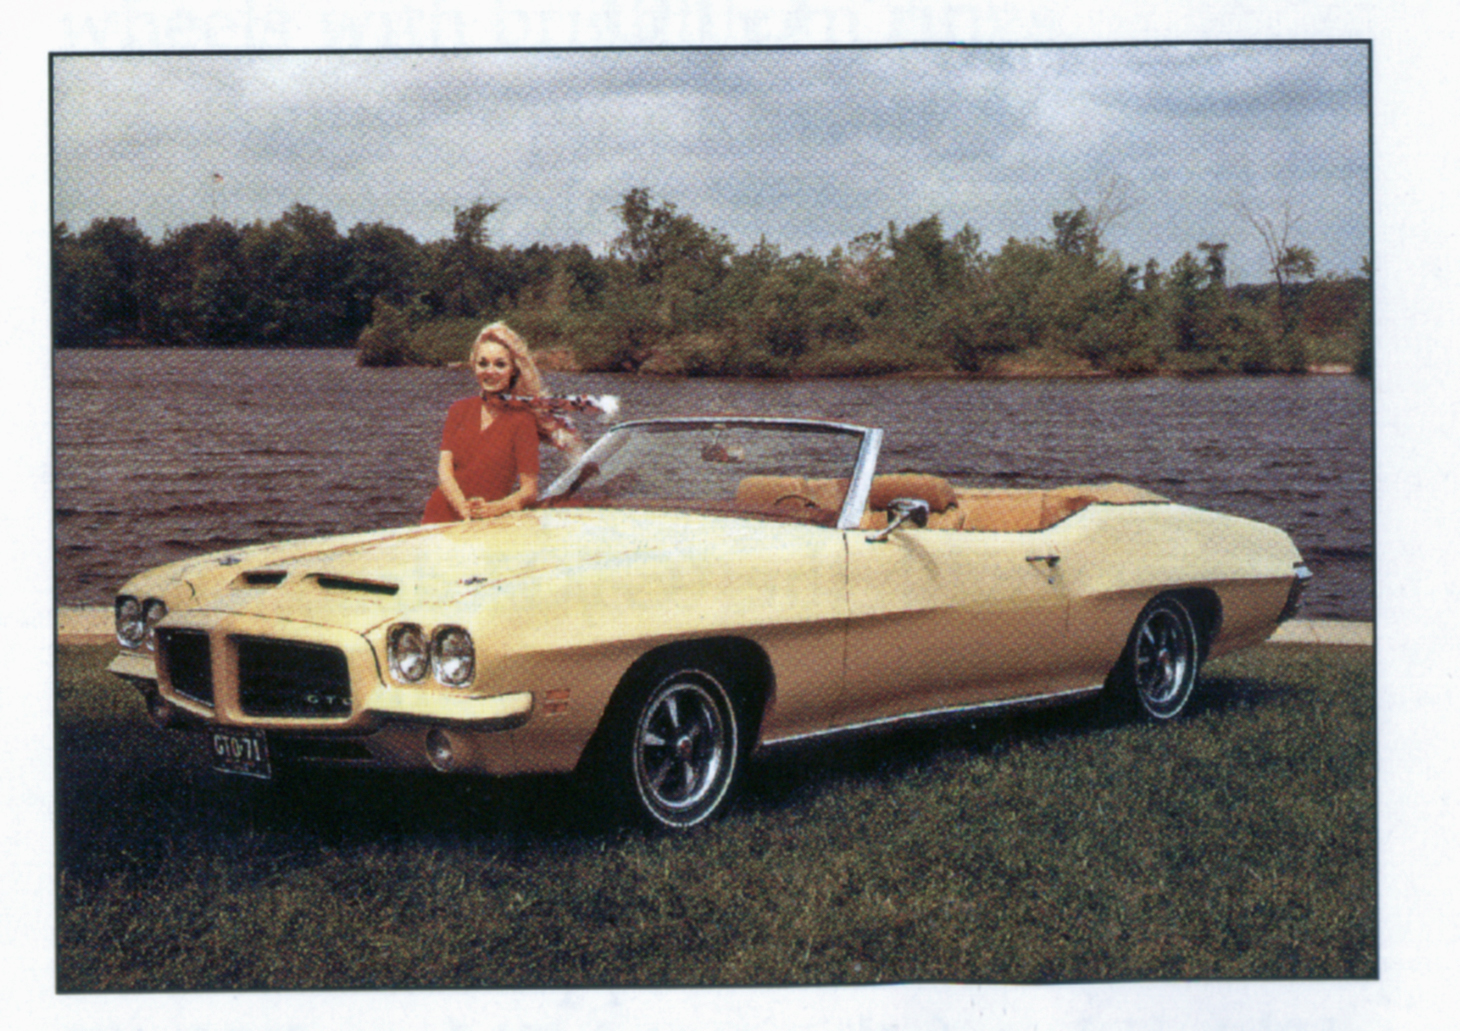 hight resolution of a 1972 gto convertible has been a popular urban legend for decades due to a simple typo in an early pre 1975 pontiac motor division report